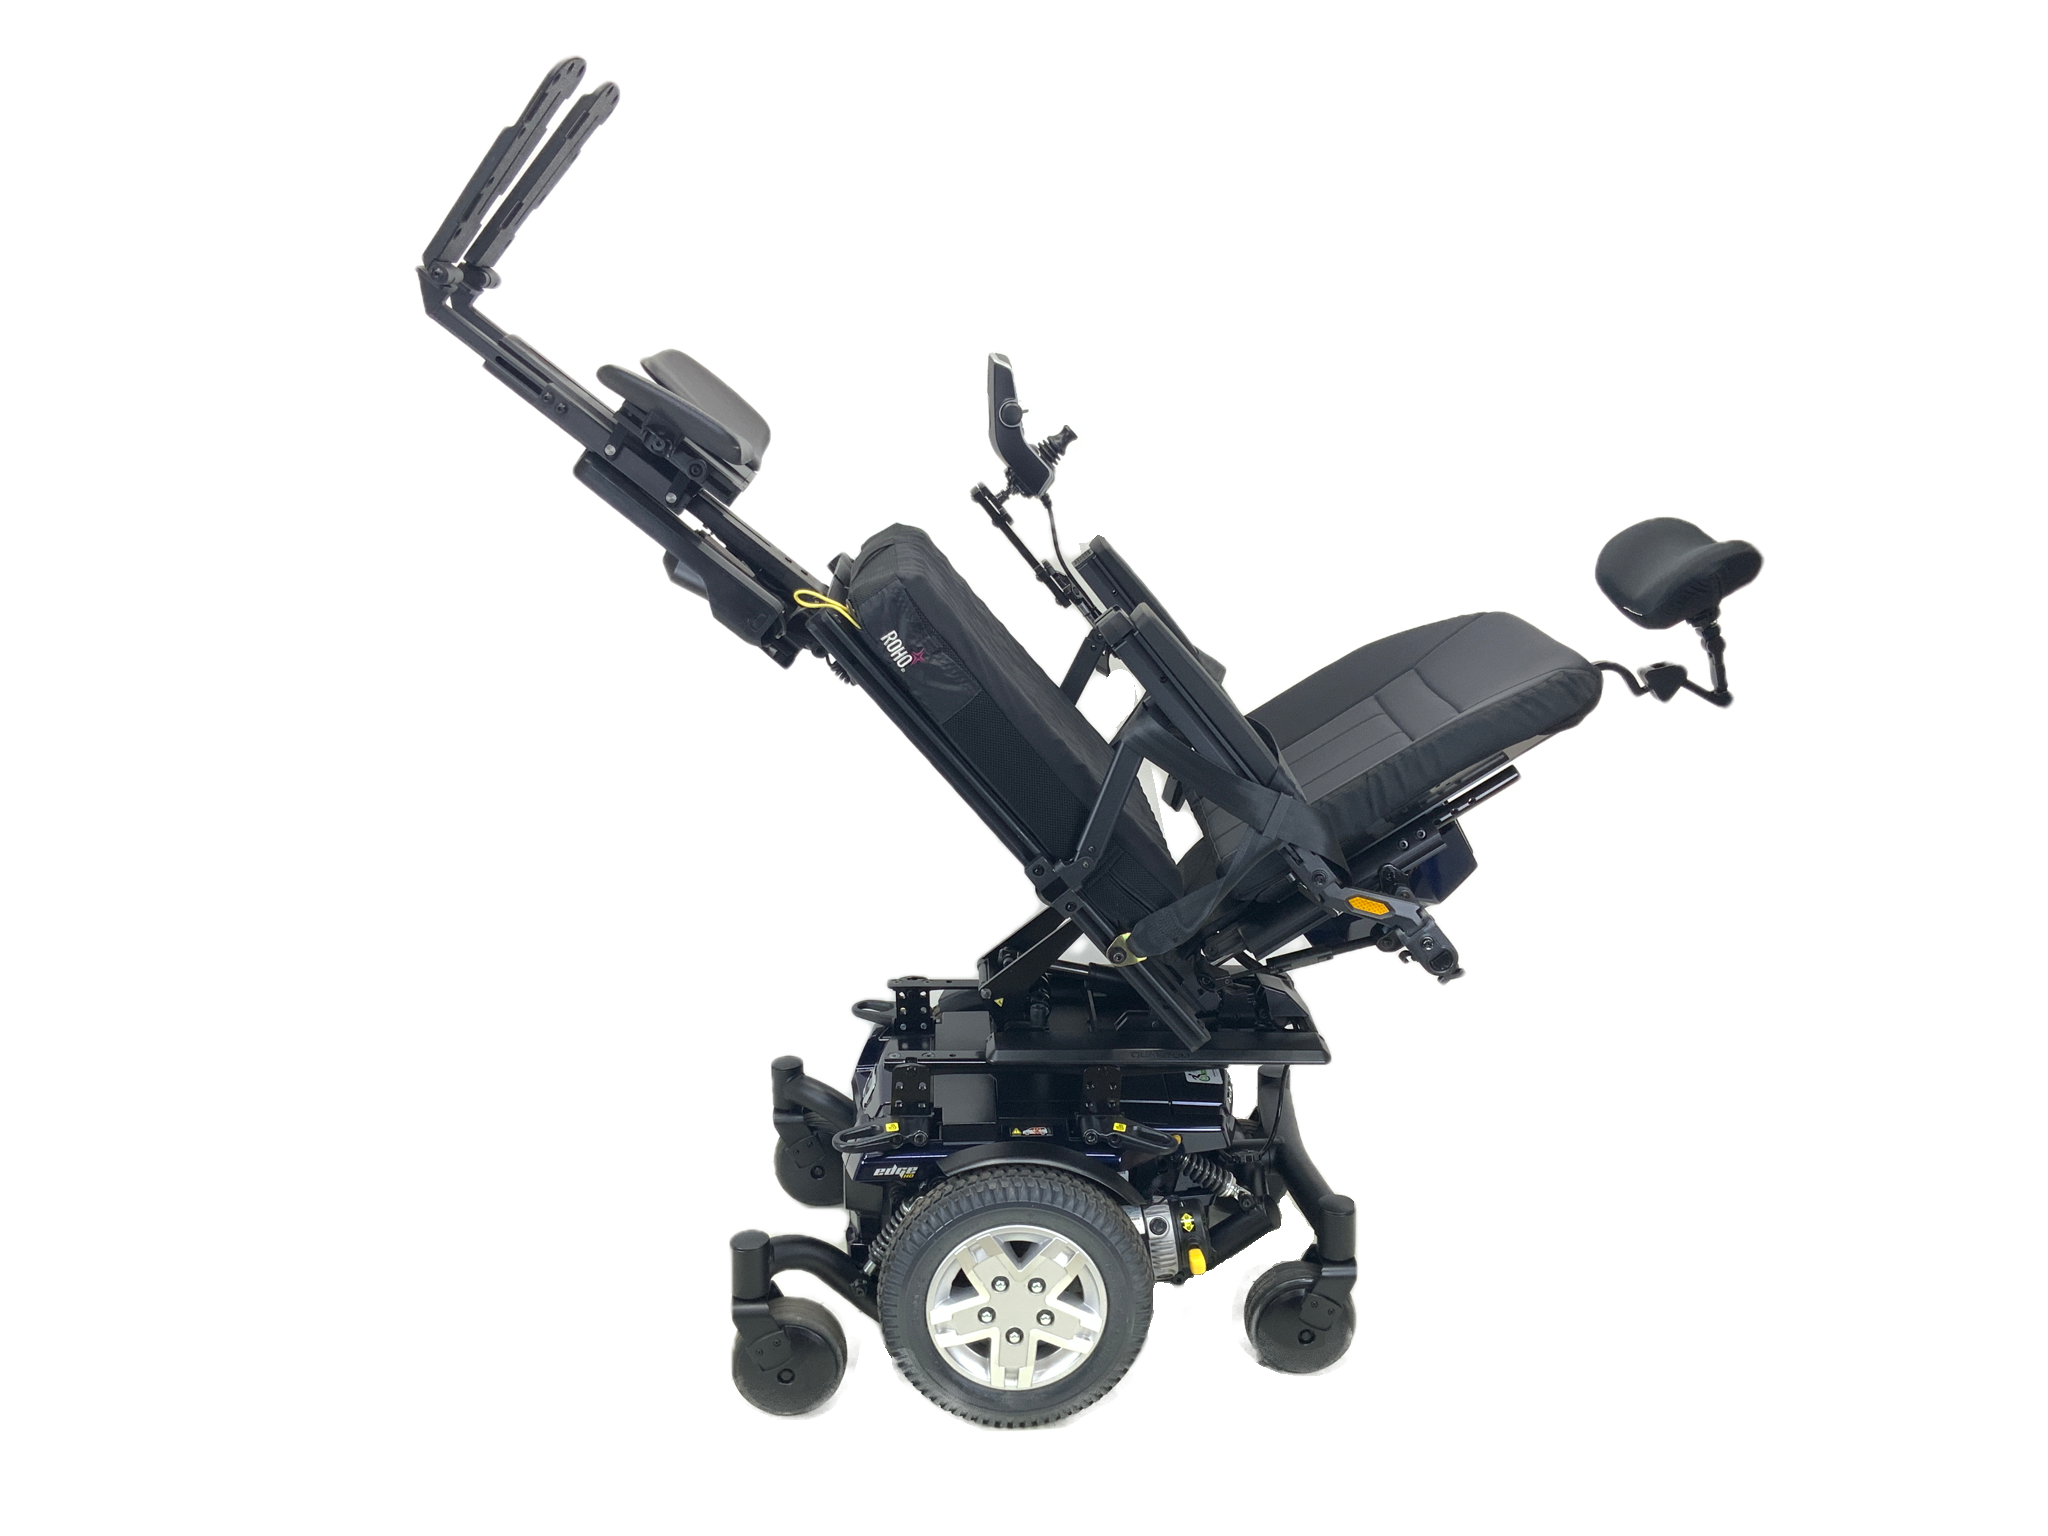 Quantum Q6 Edge HD Bariatric Heavy Duty Power Chair | 19